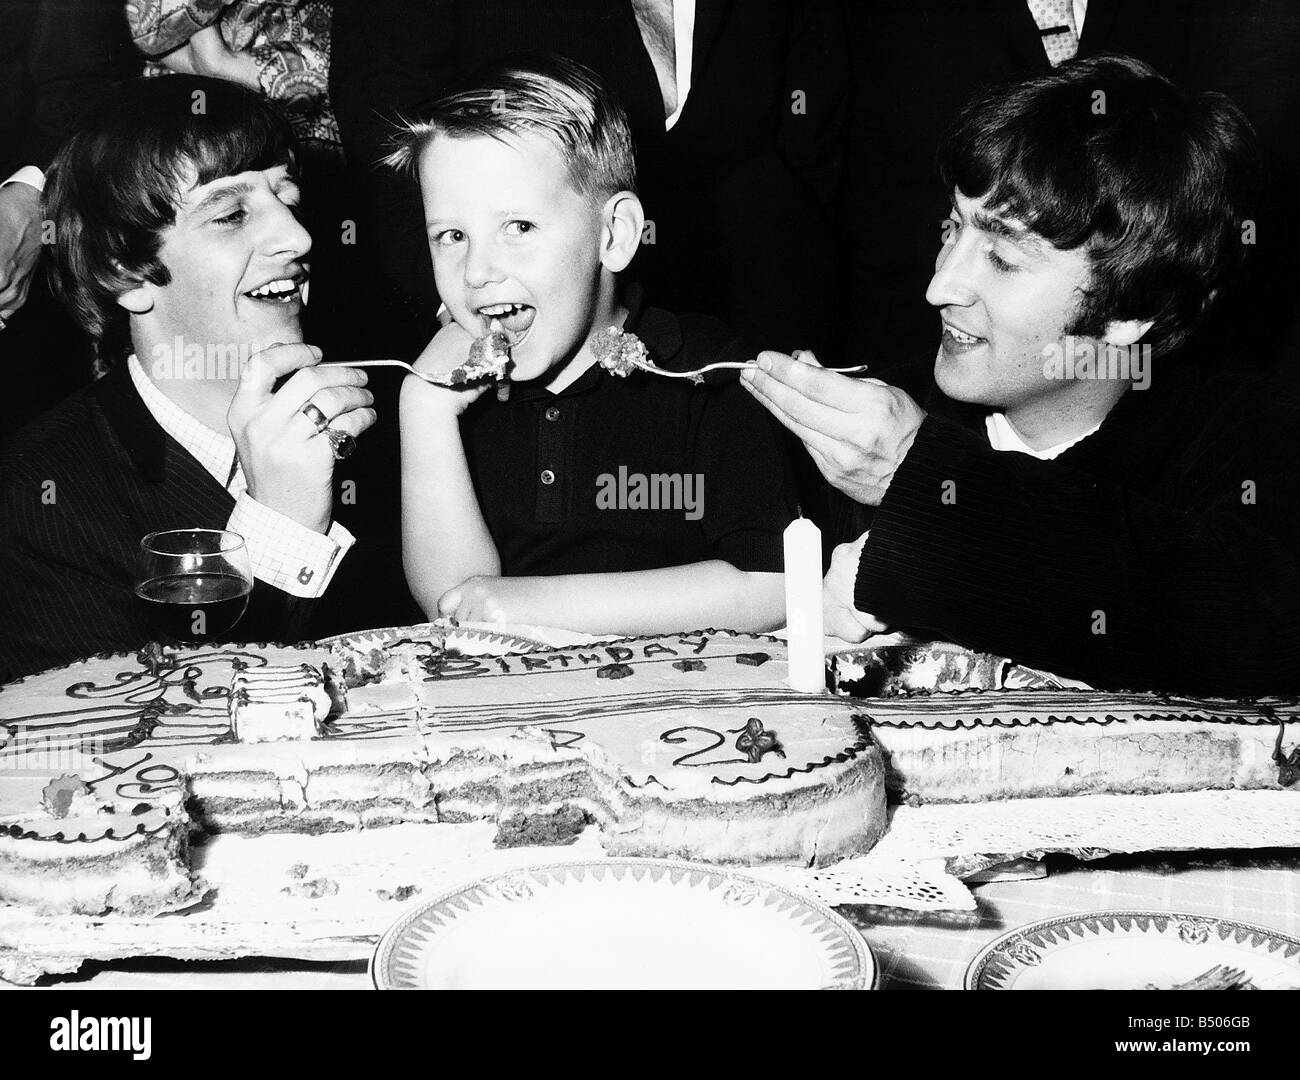 John Lennon And Ringo Starr Attend The Birthday Party Of Roy Orbison Stock Photo Alamy